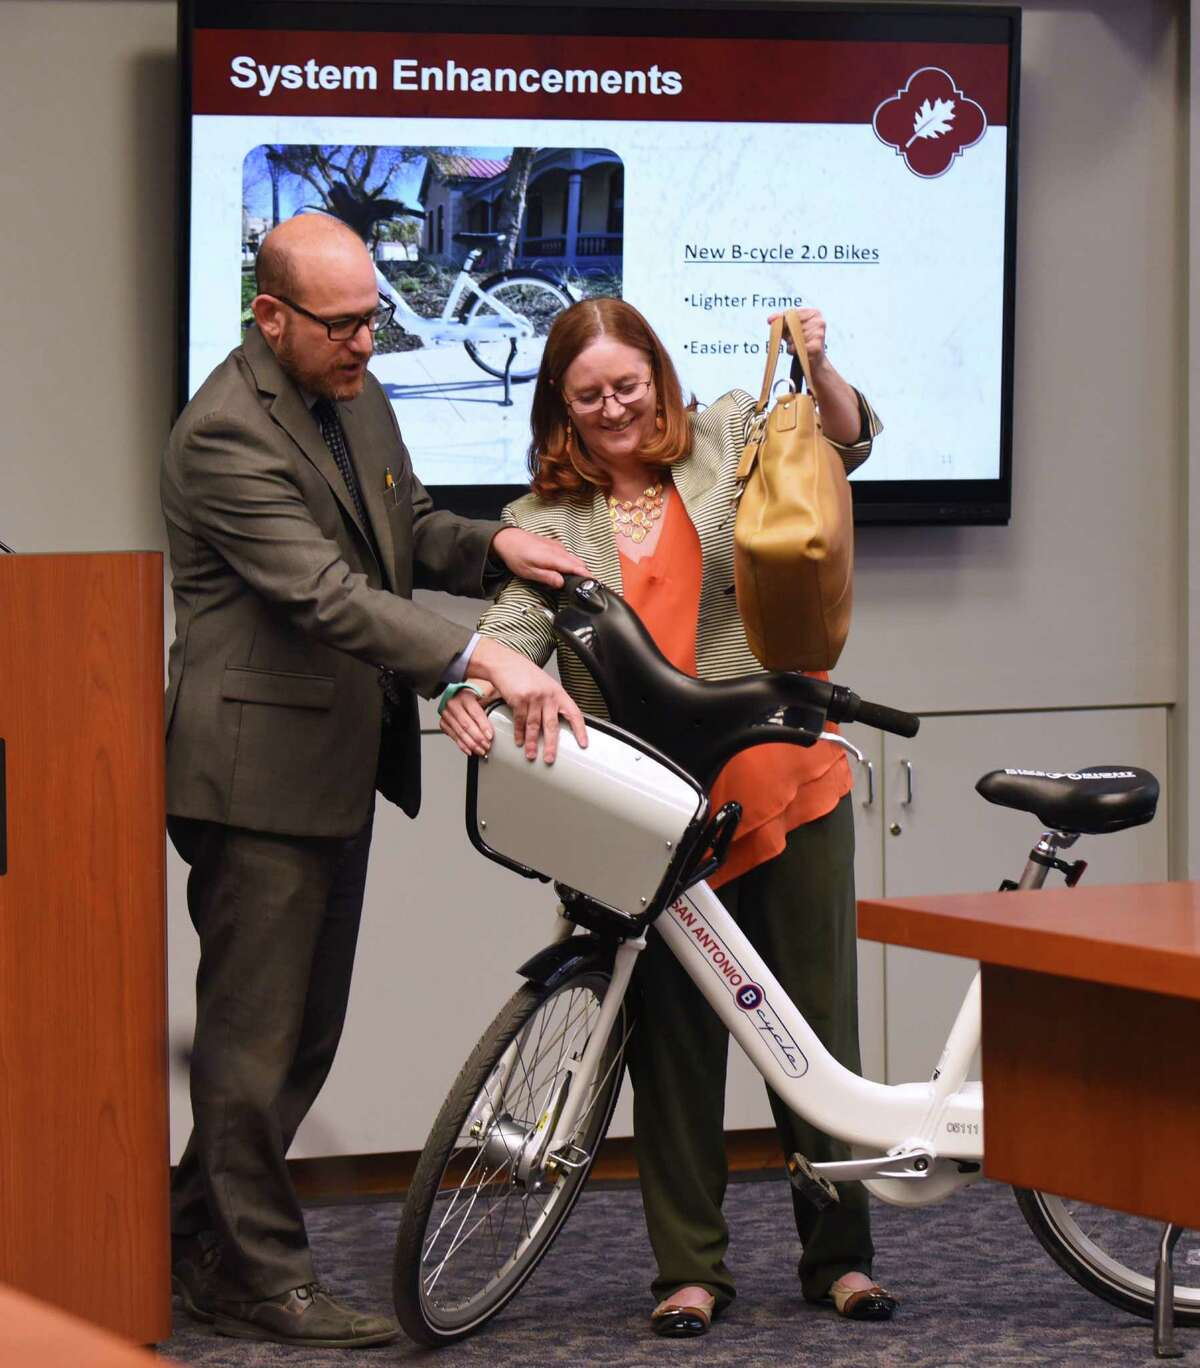 Douglas Melnick, left, the city's chief sustainability officer, and JD Simpson, executive director of the nonprofit San Antonio Bike Share, display a new B-Cycle 2.0 during a meeting of the San Antonio City Council on Wednesday. B-Cycle, the city's bike sharing program, plans to introduce 50 of the newer, sleeker bikes in April, and more later.